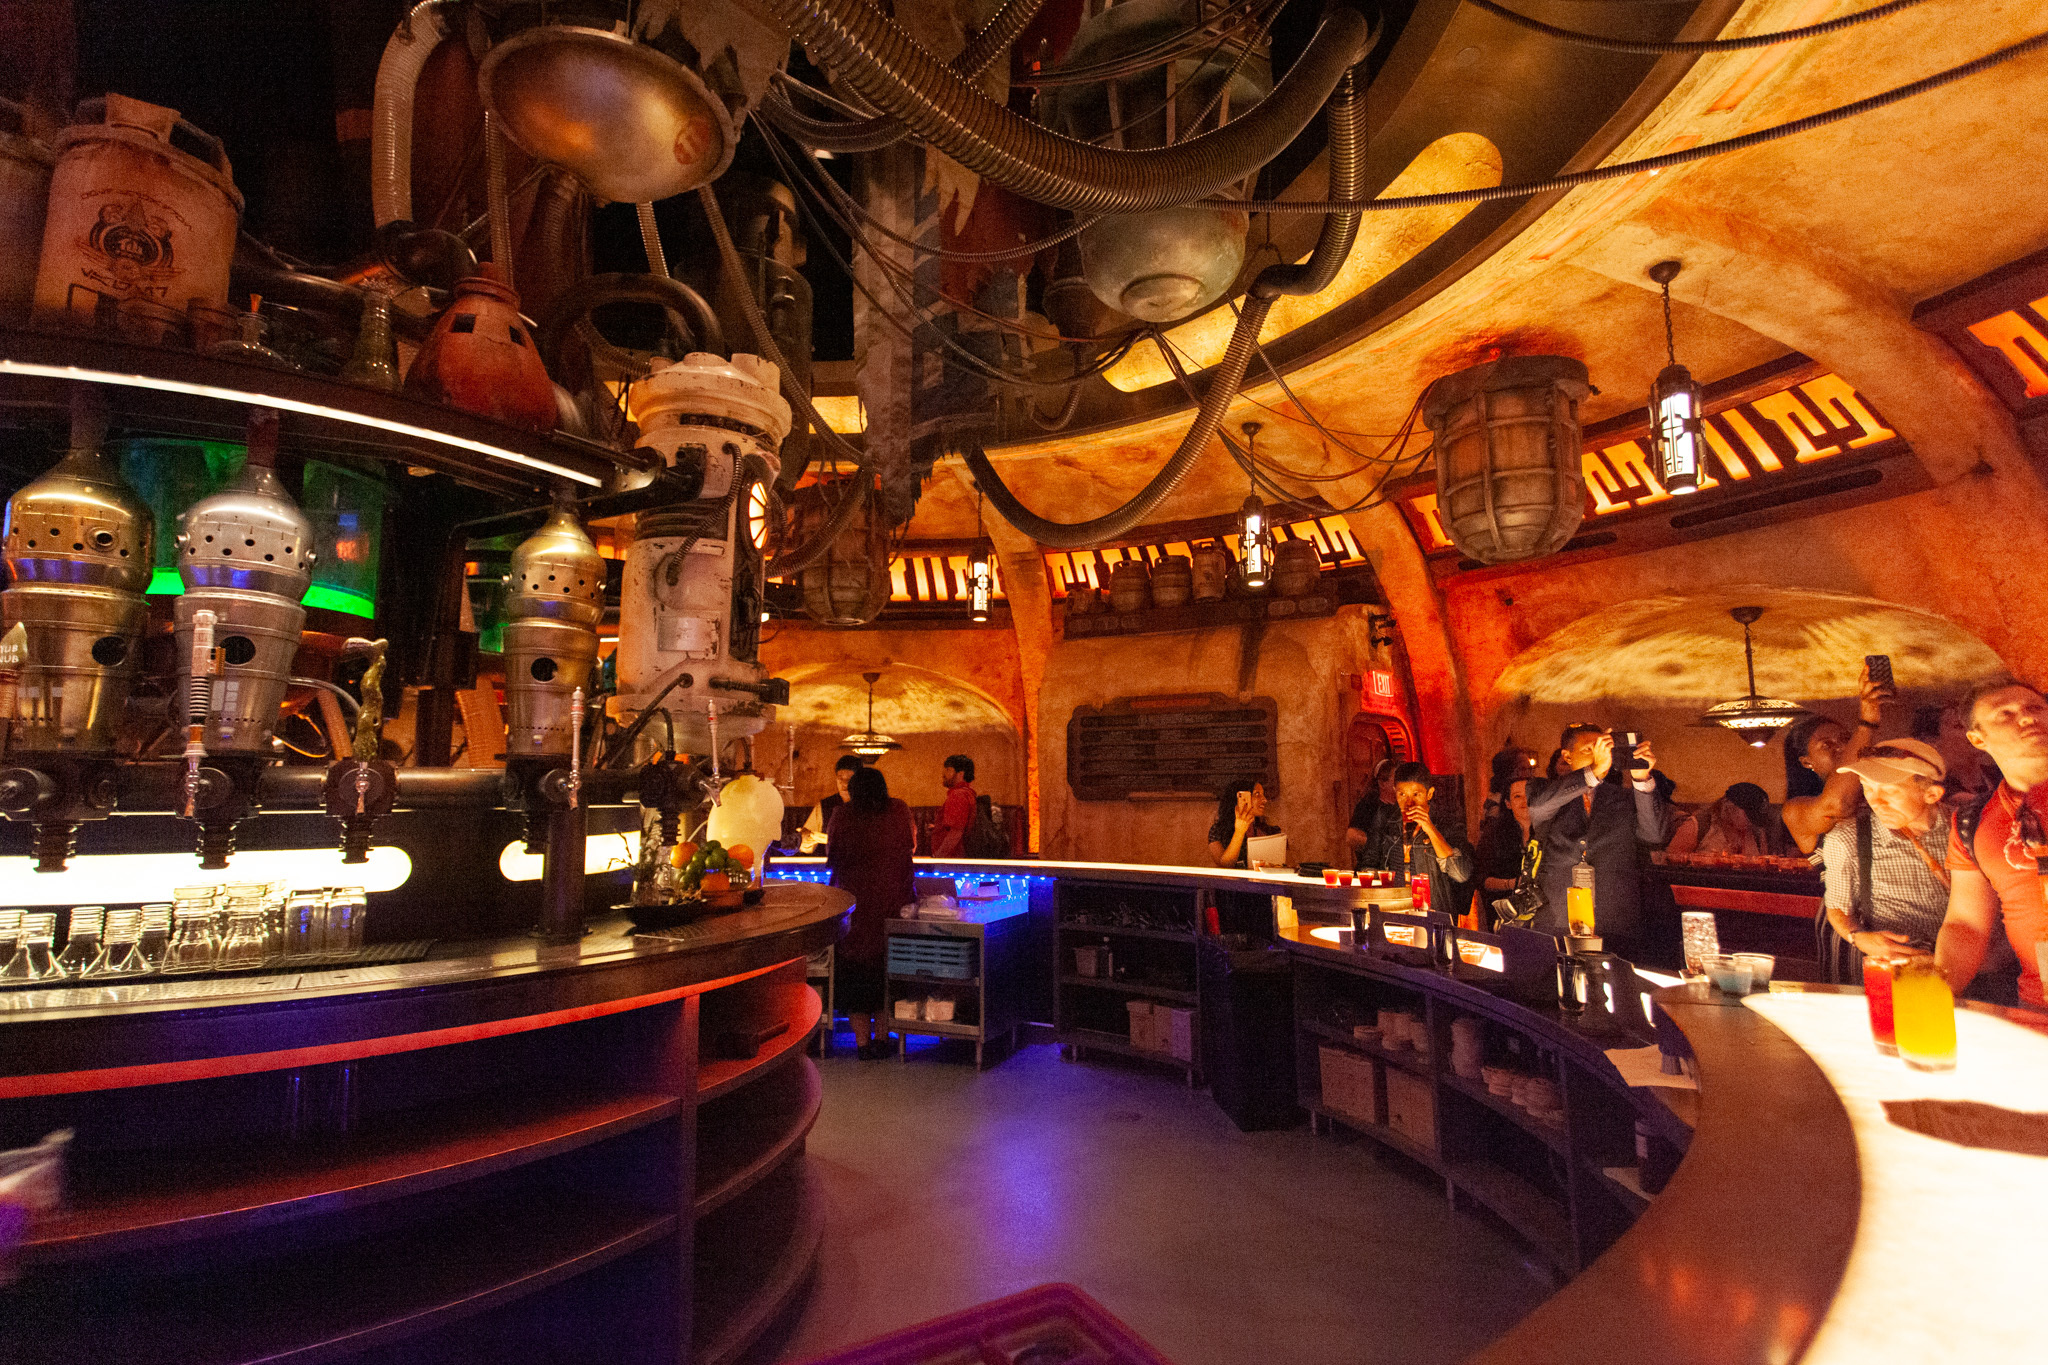 Disneyland's Star Wars: Galaxy's Edge has a boozy bar. Here's a peek inside Oga's Cantina.